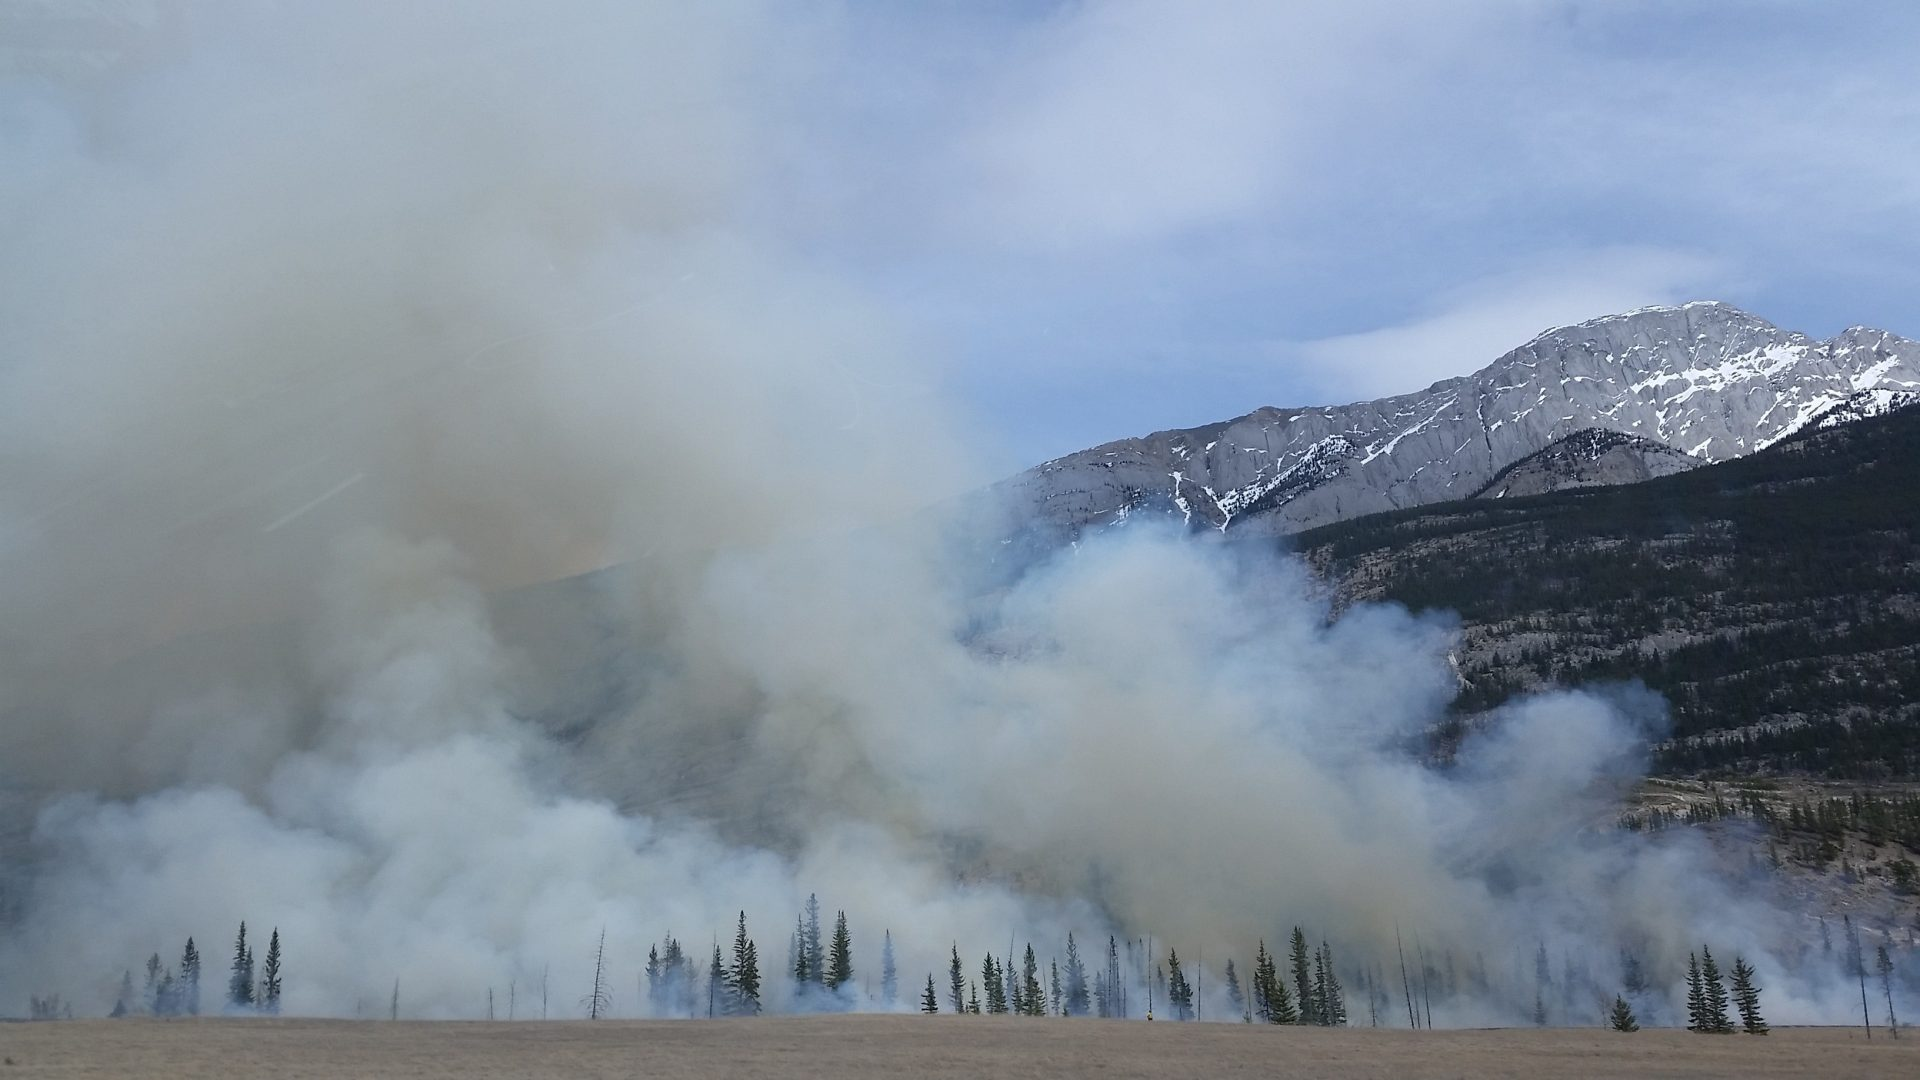 Forest fires and air pollution